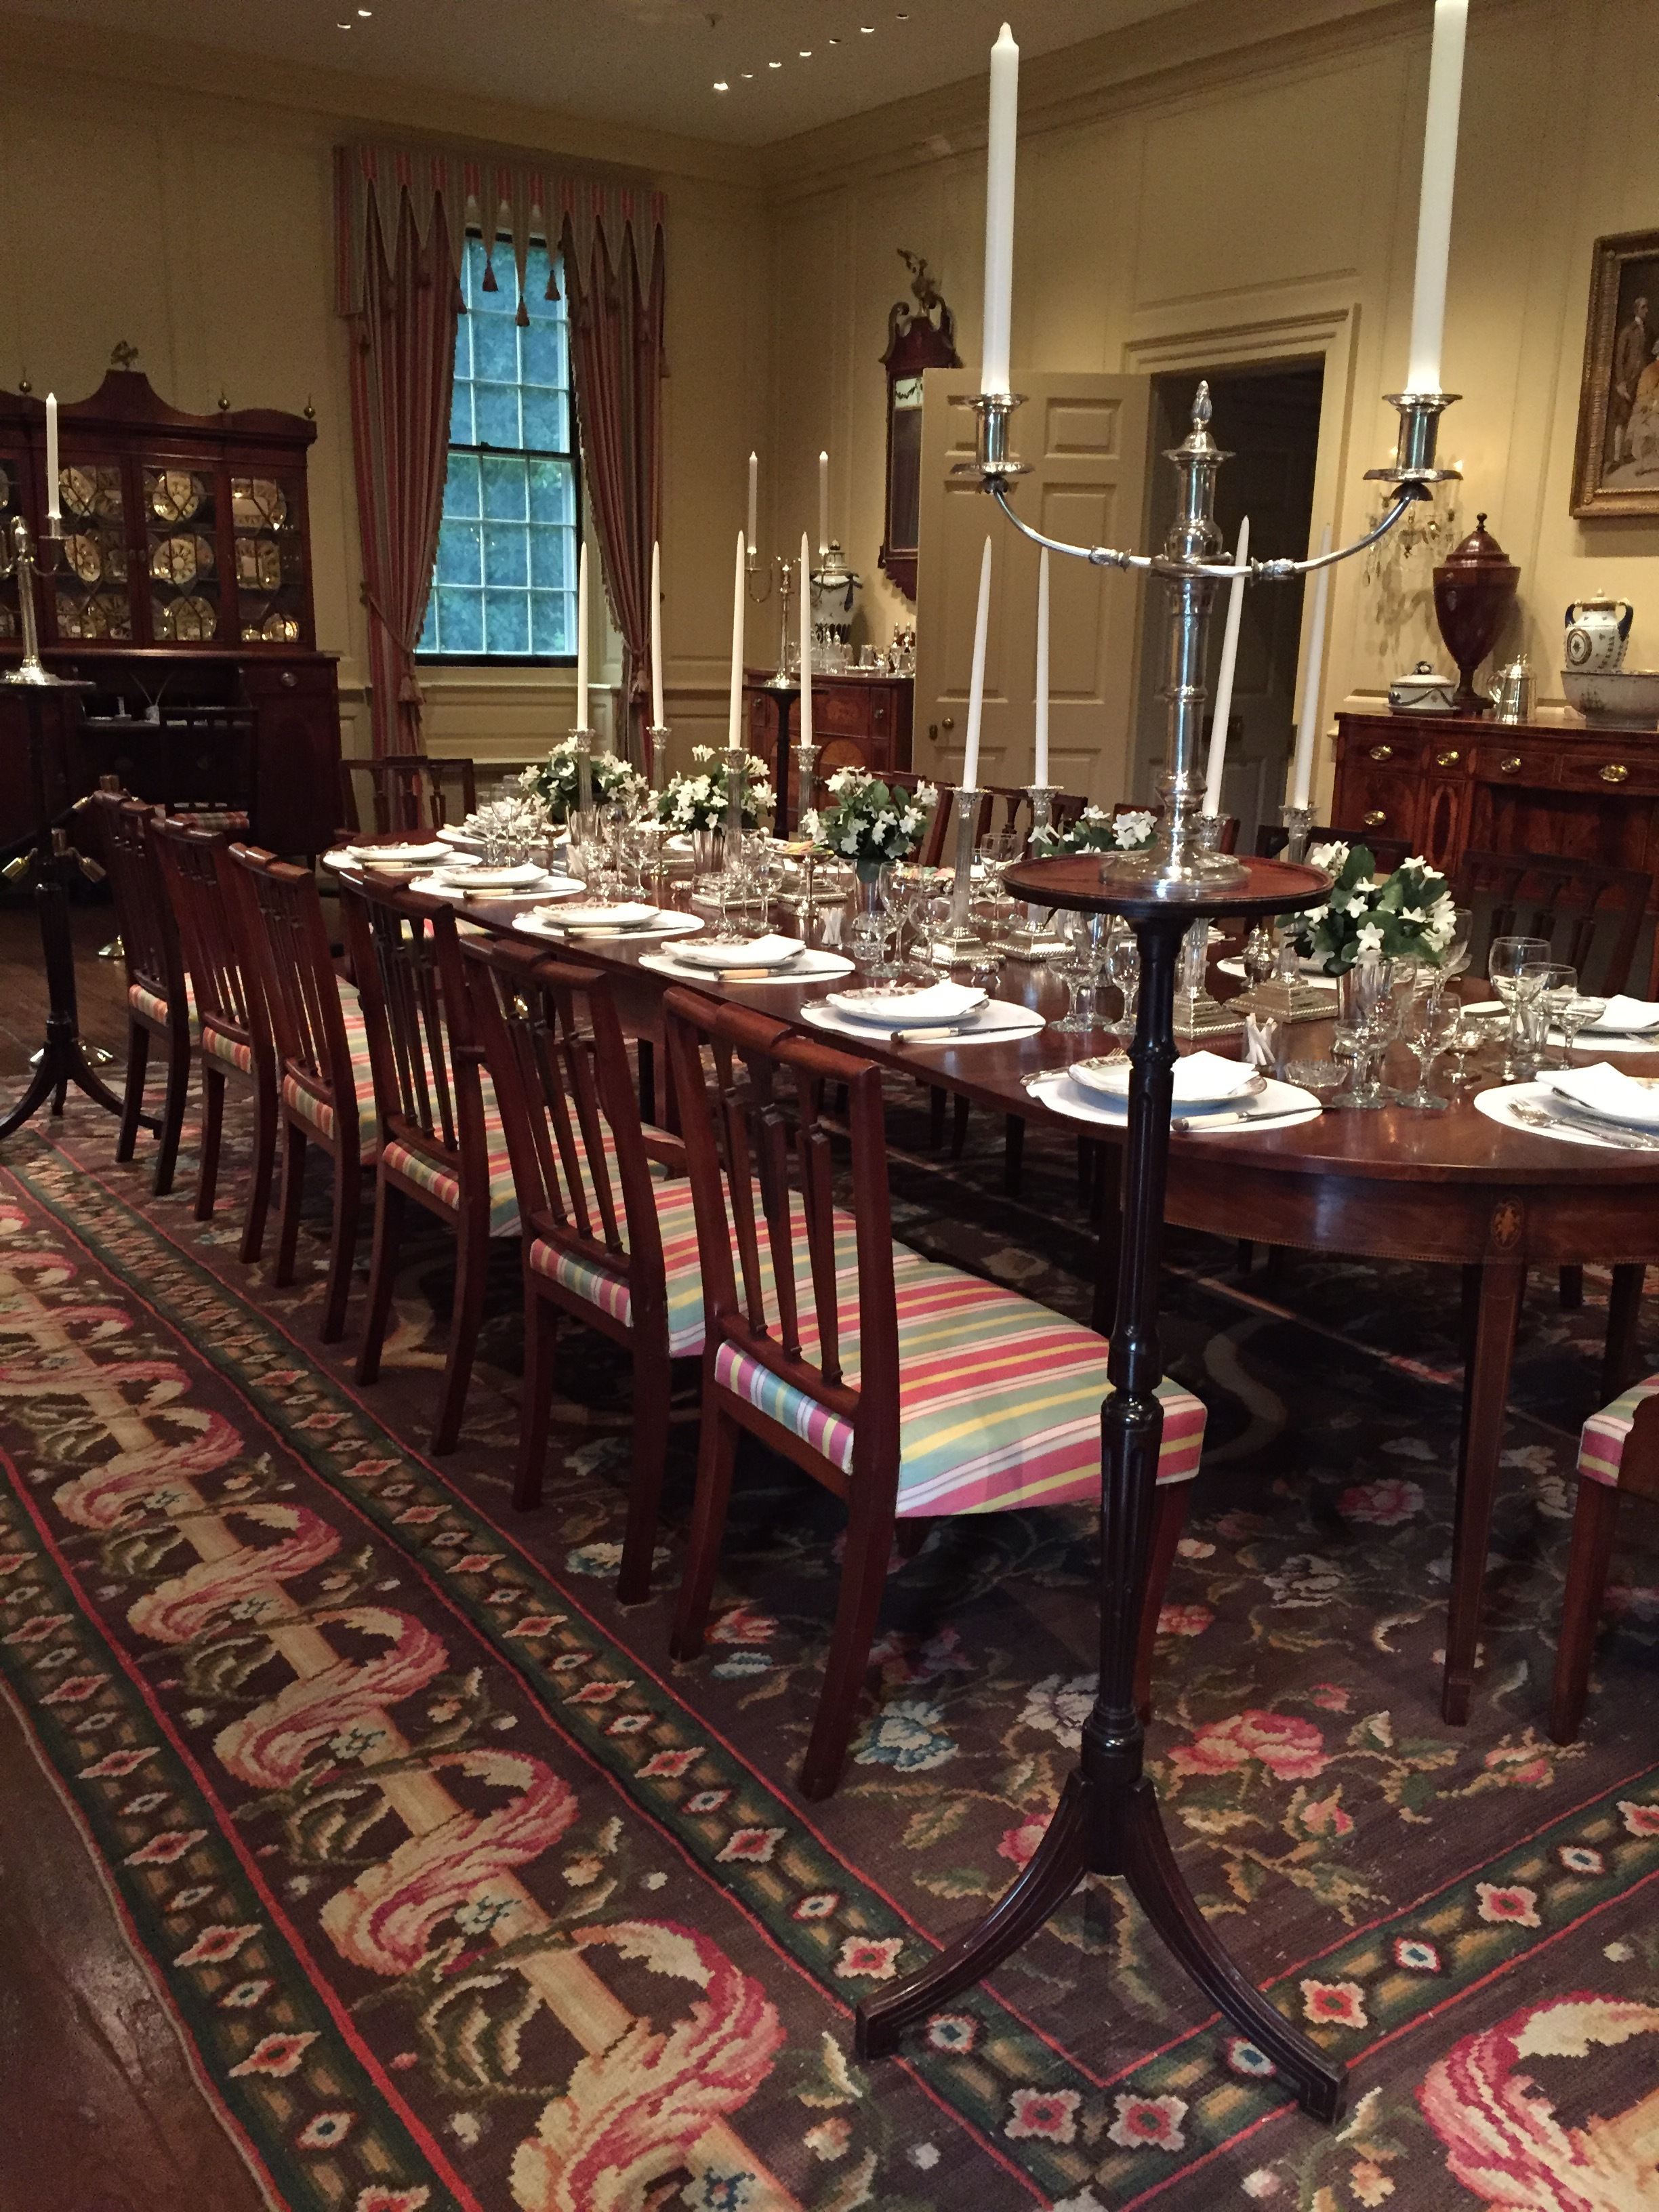 The Main dining room at Winterthur